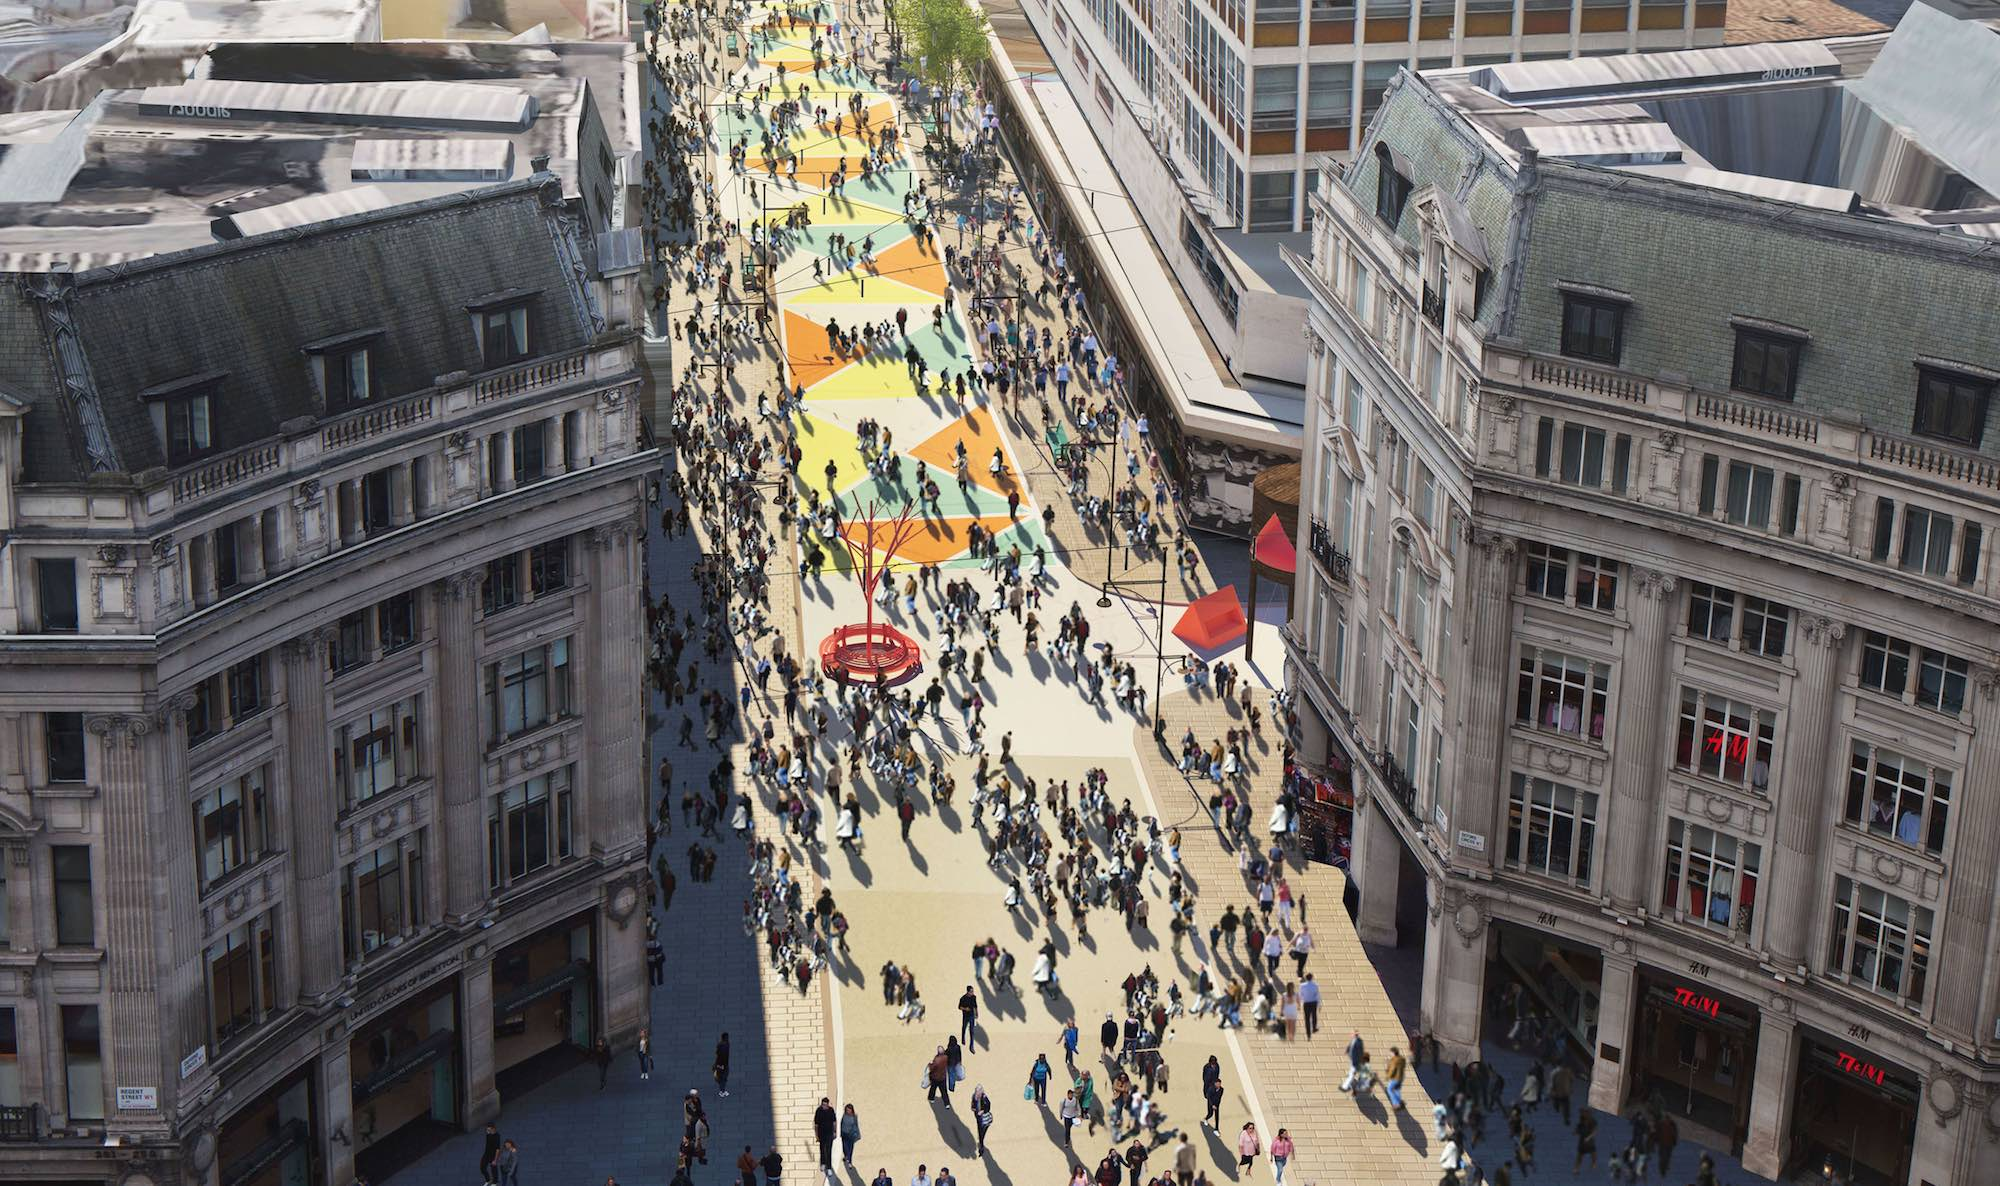 Oxford Street to be partly traffic-free from next year, says mayor